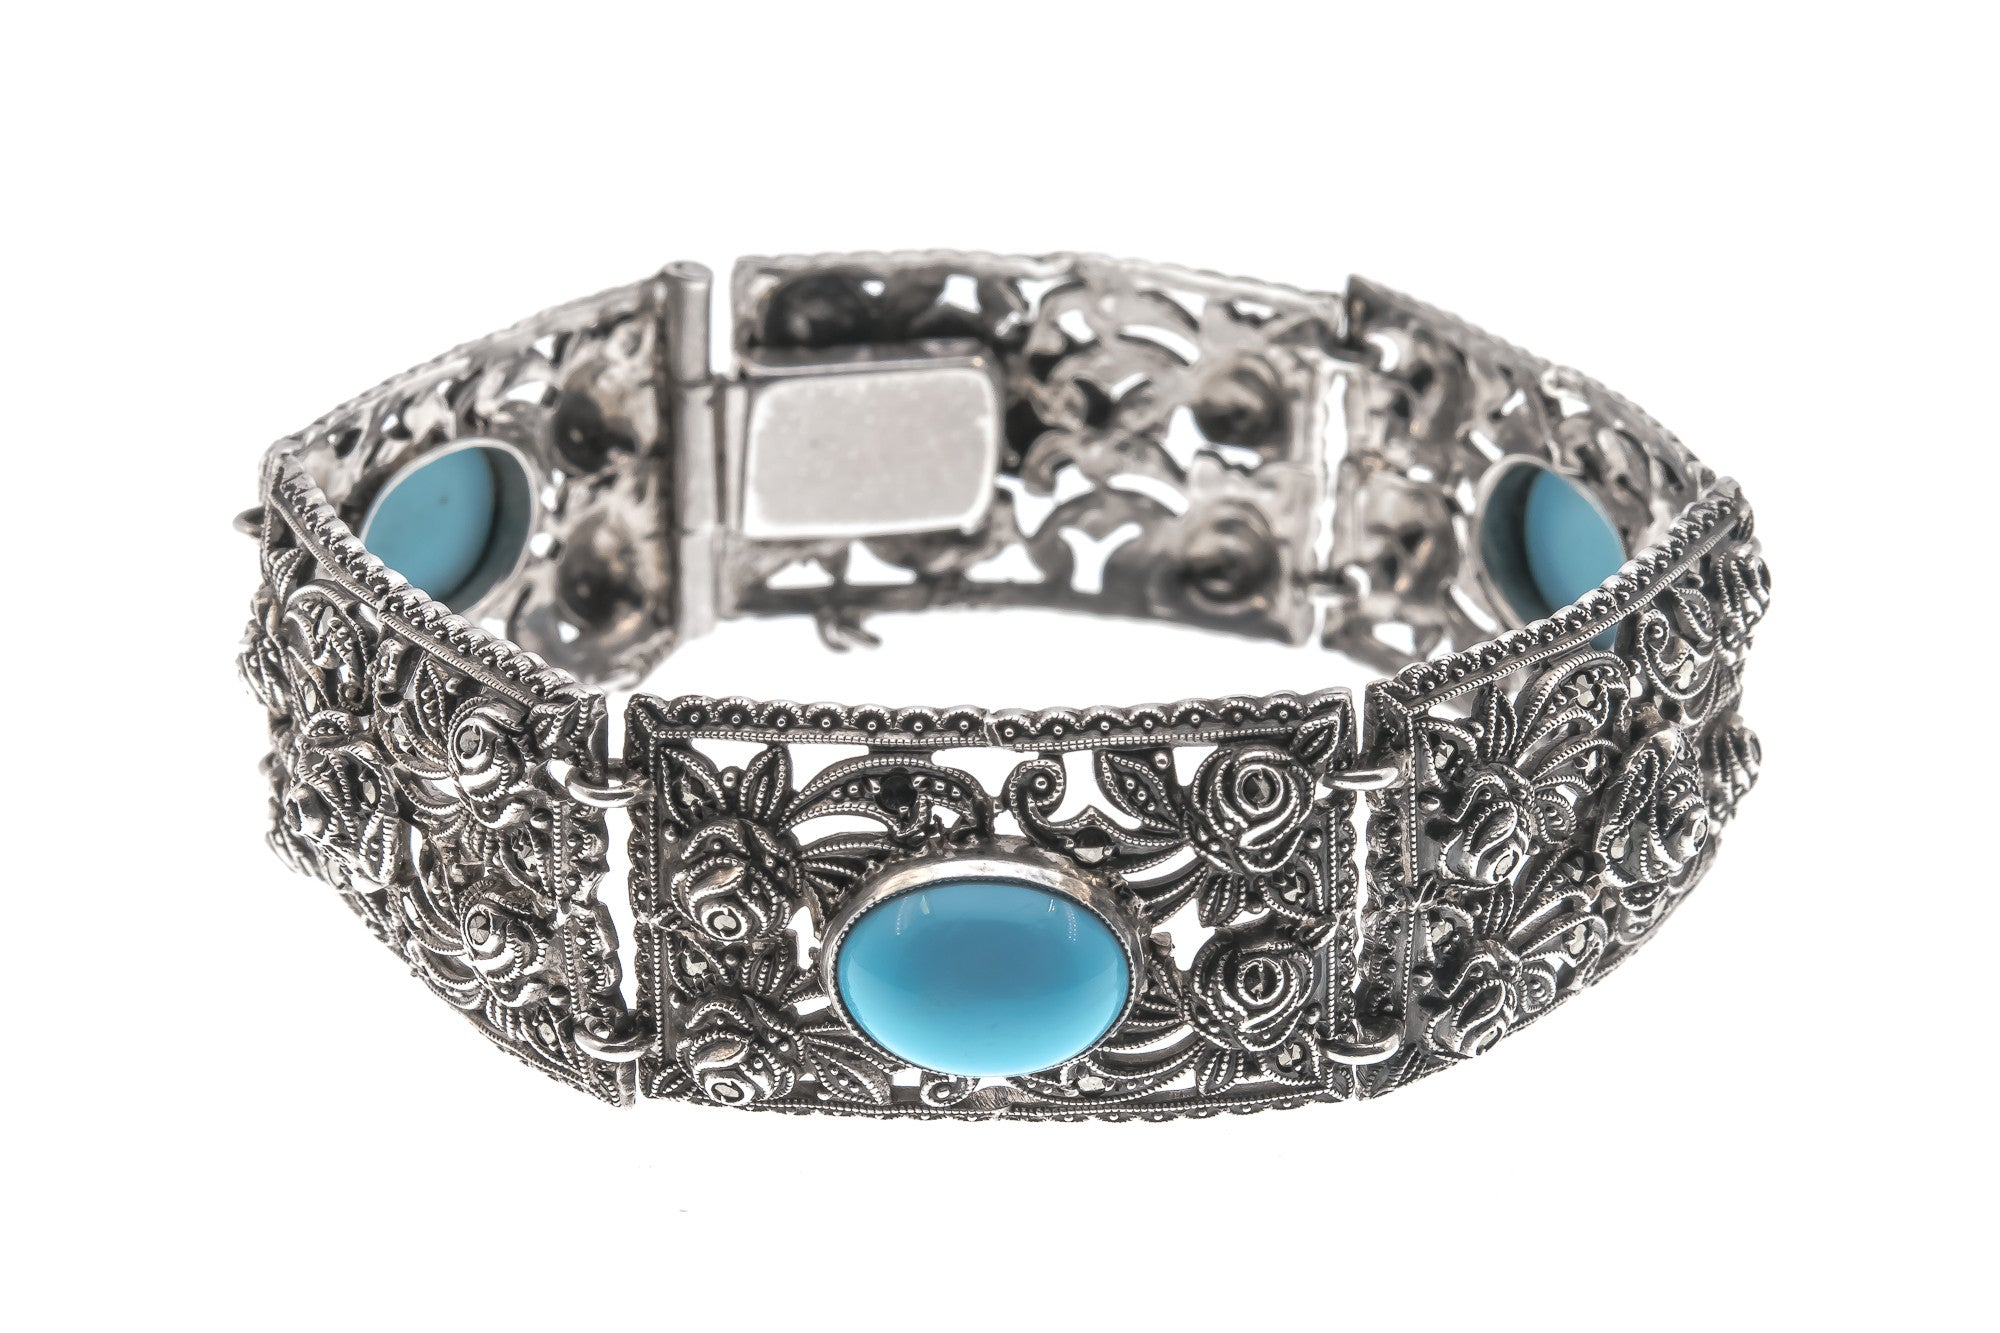 Art Deco Sterling Silver Turquoise and Marcasite Bracelet